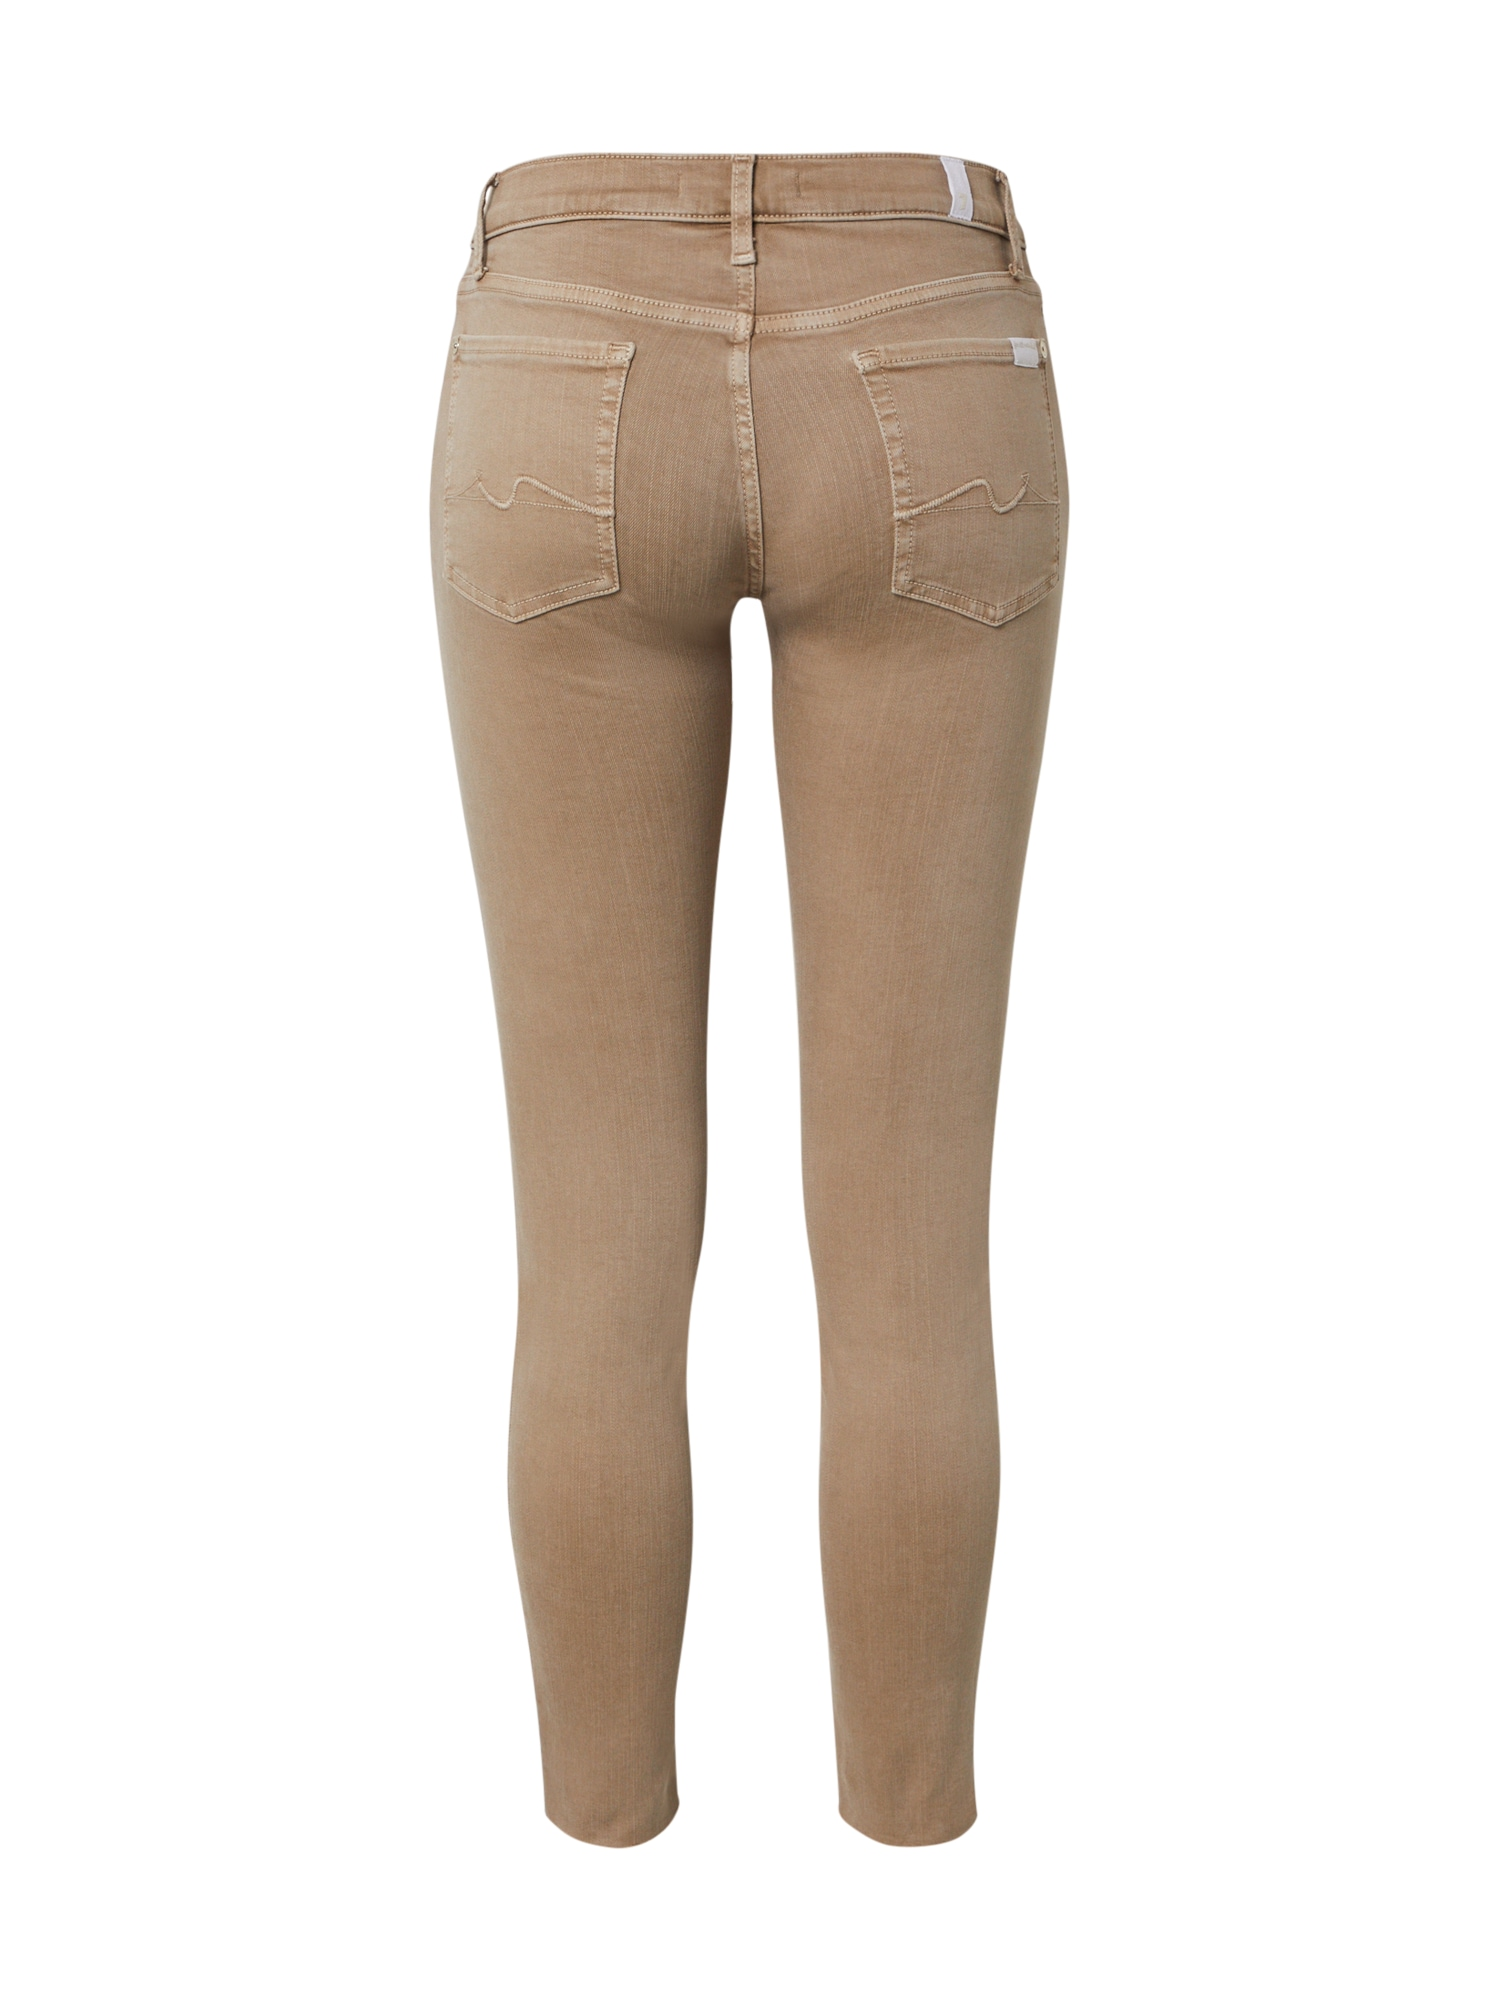 7 for all mankind Jeans  sand